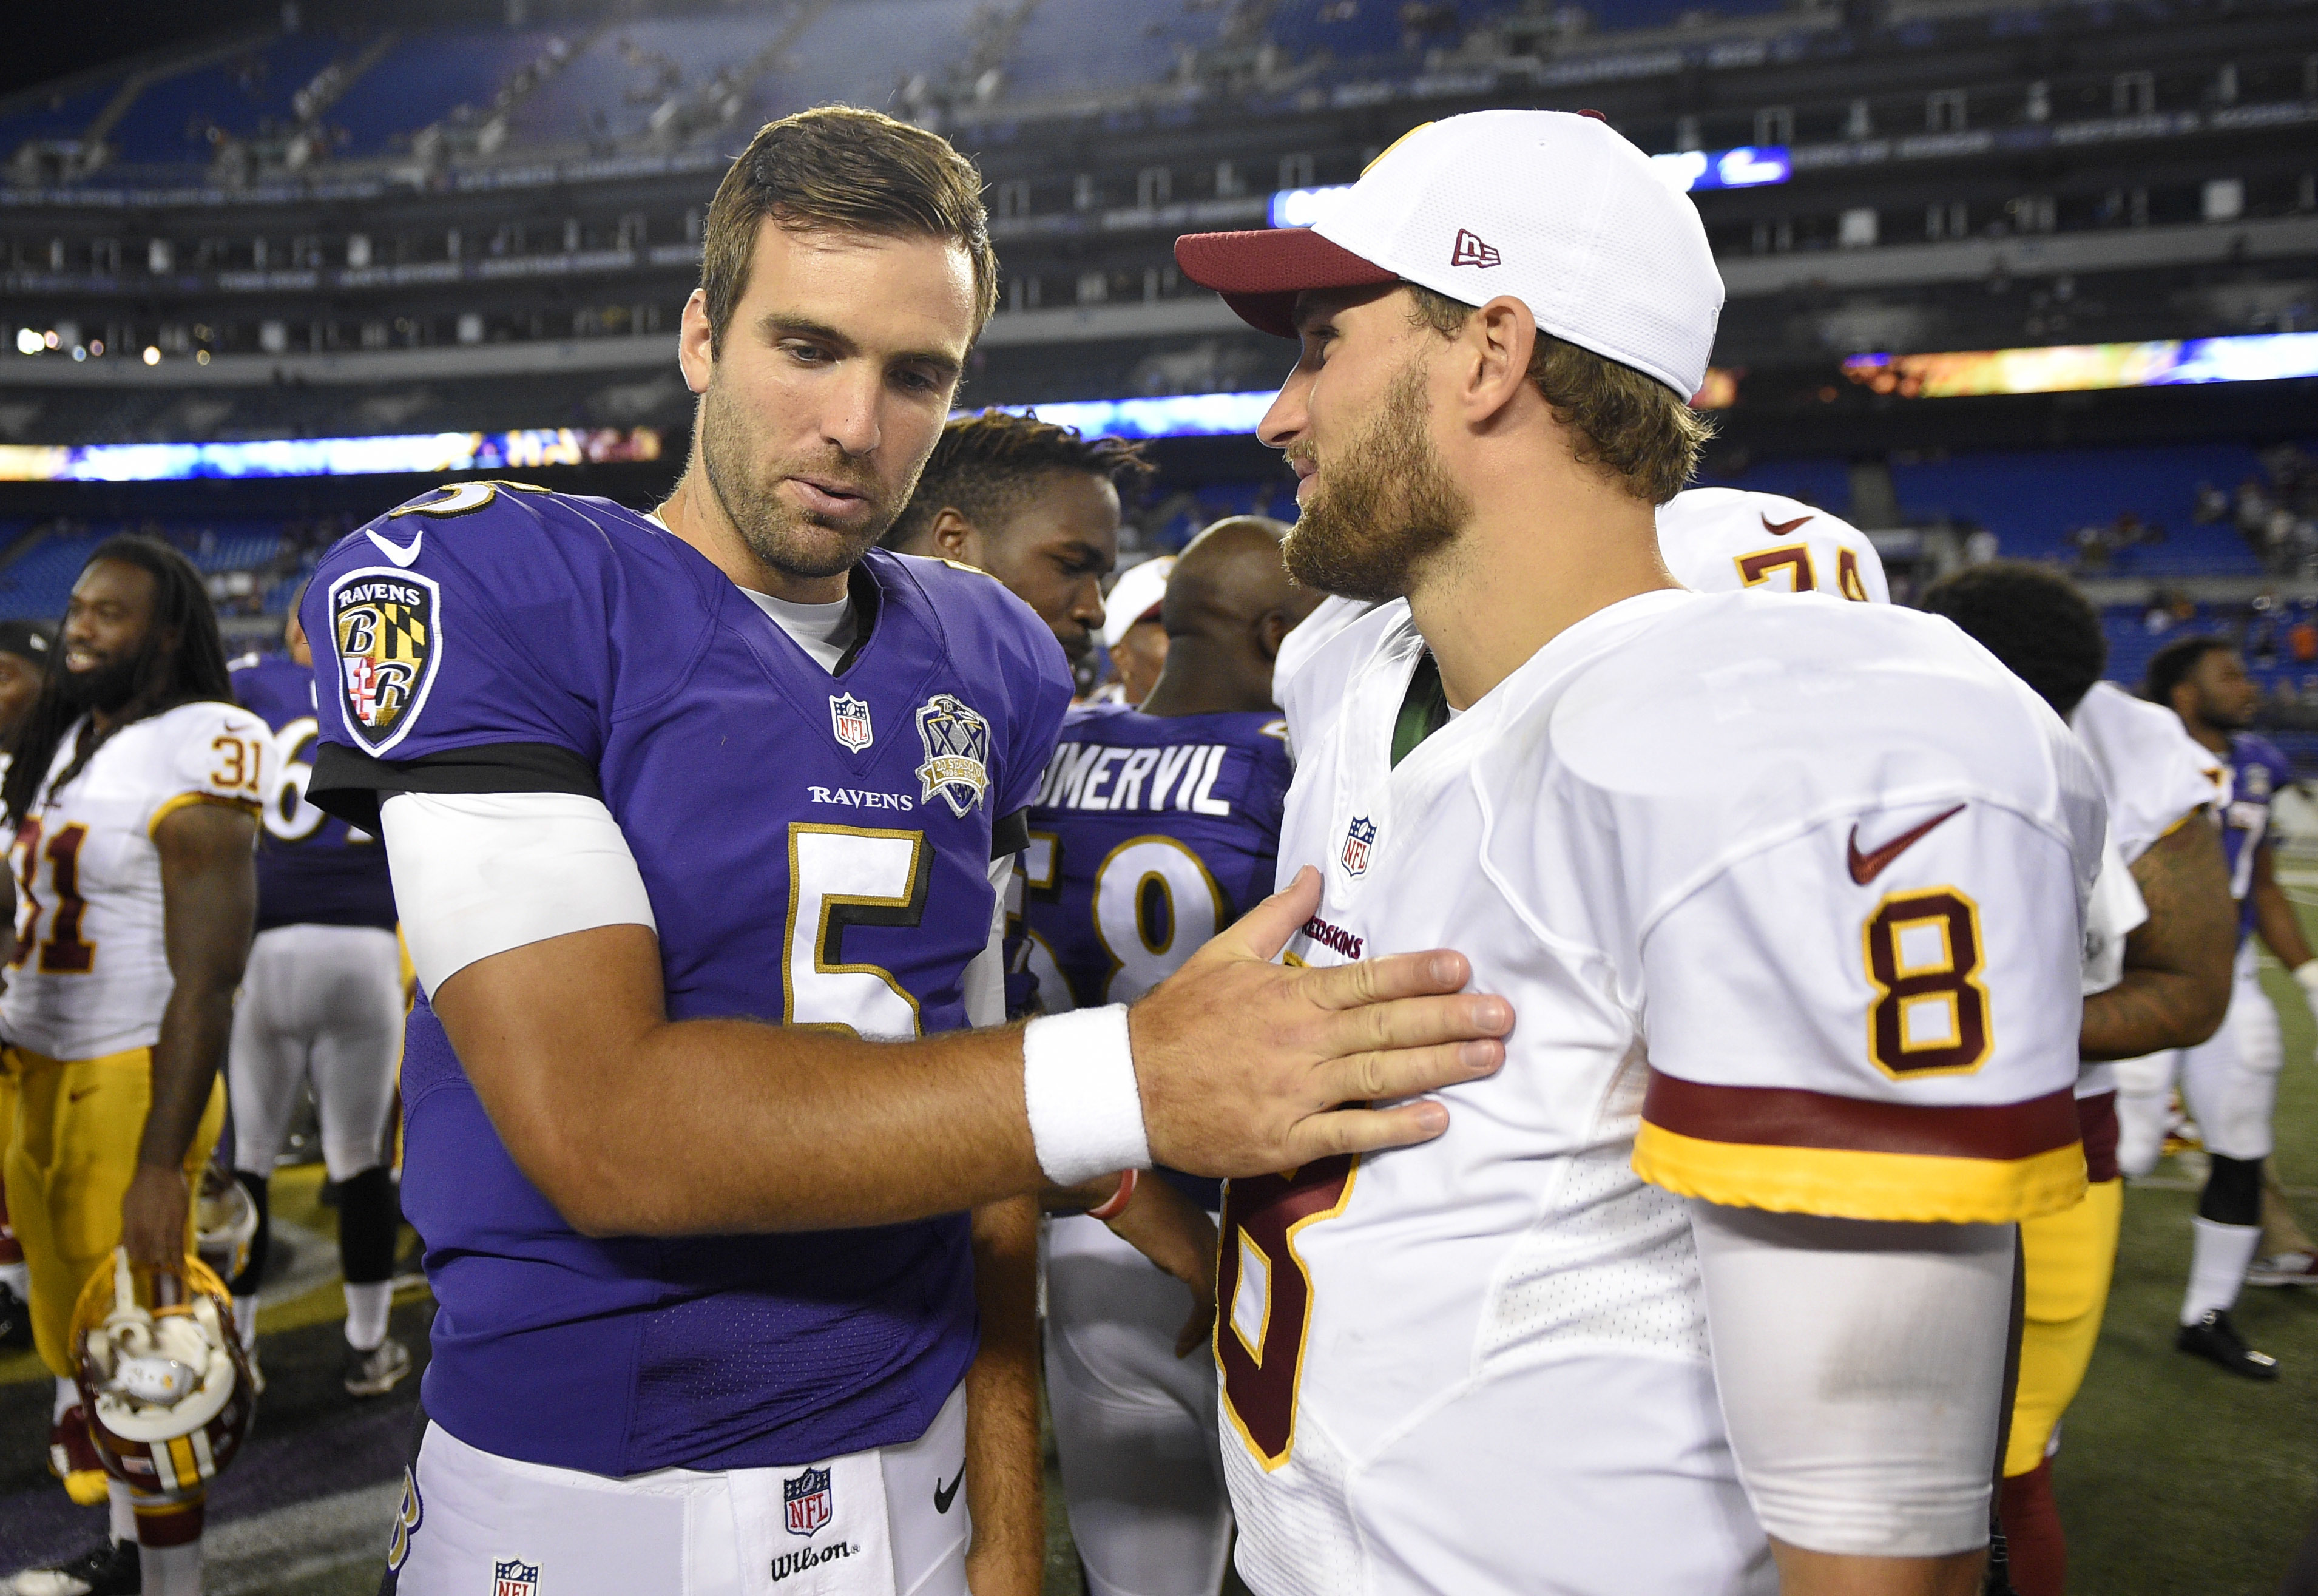 FILE - In this Aug. 29, 2015, file photo, Baltimore Ravens quarterback Joe Flacco, left, chats with Washington Redskins quarterback Kirk Cousins after a preseason NFL football game in Baltimore. If the cornerstone of a great rivalry is proximity between t